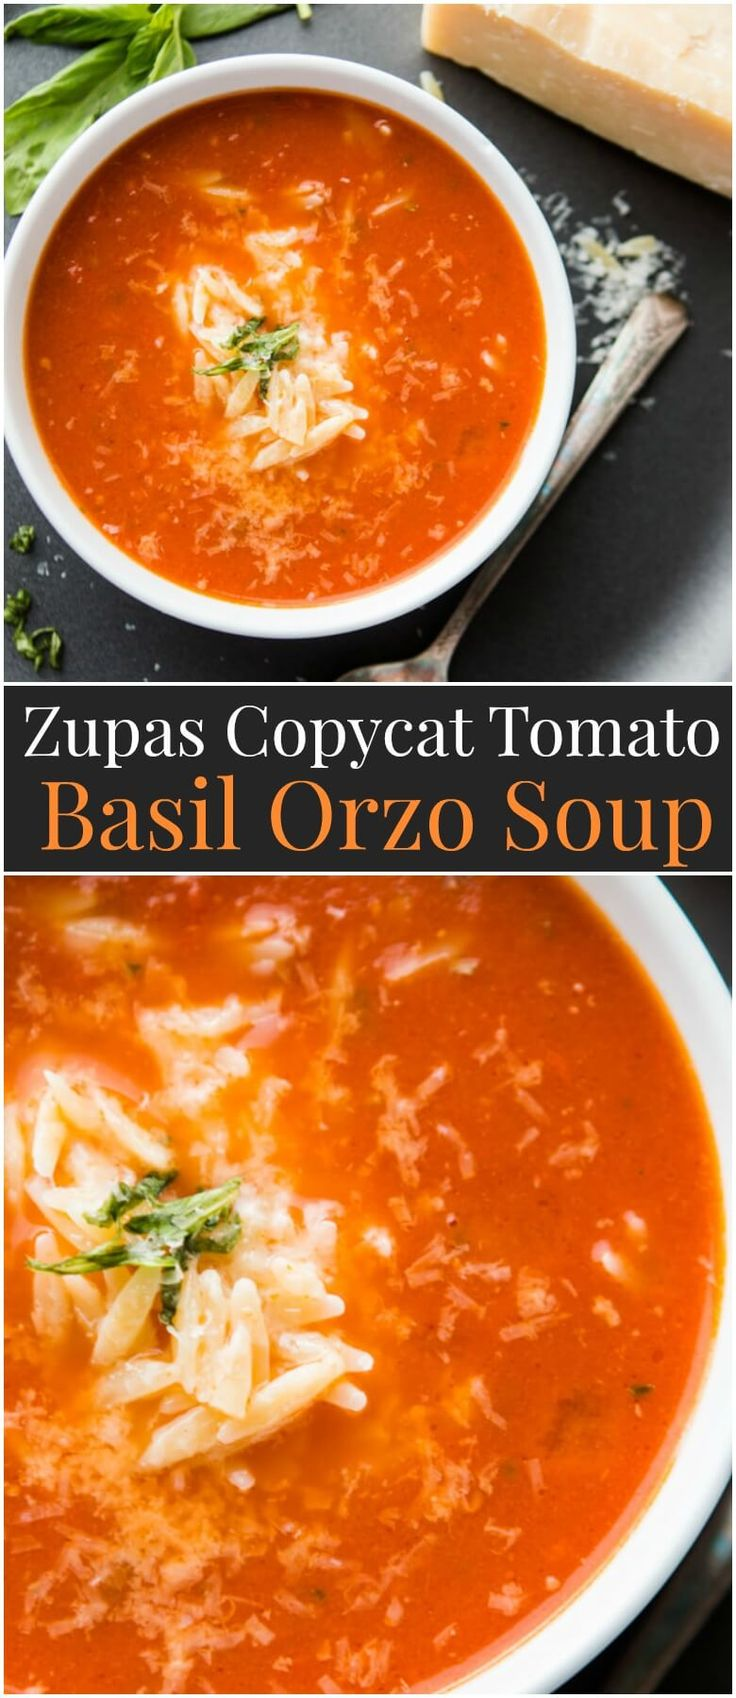 Everyone loves Zupas and on a whim one evening I decided to make a Zupas Copycat Tomato Basil Orzo Soup and the results were fantastic! ohsweetbasil.com